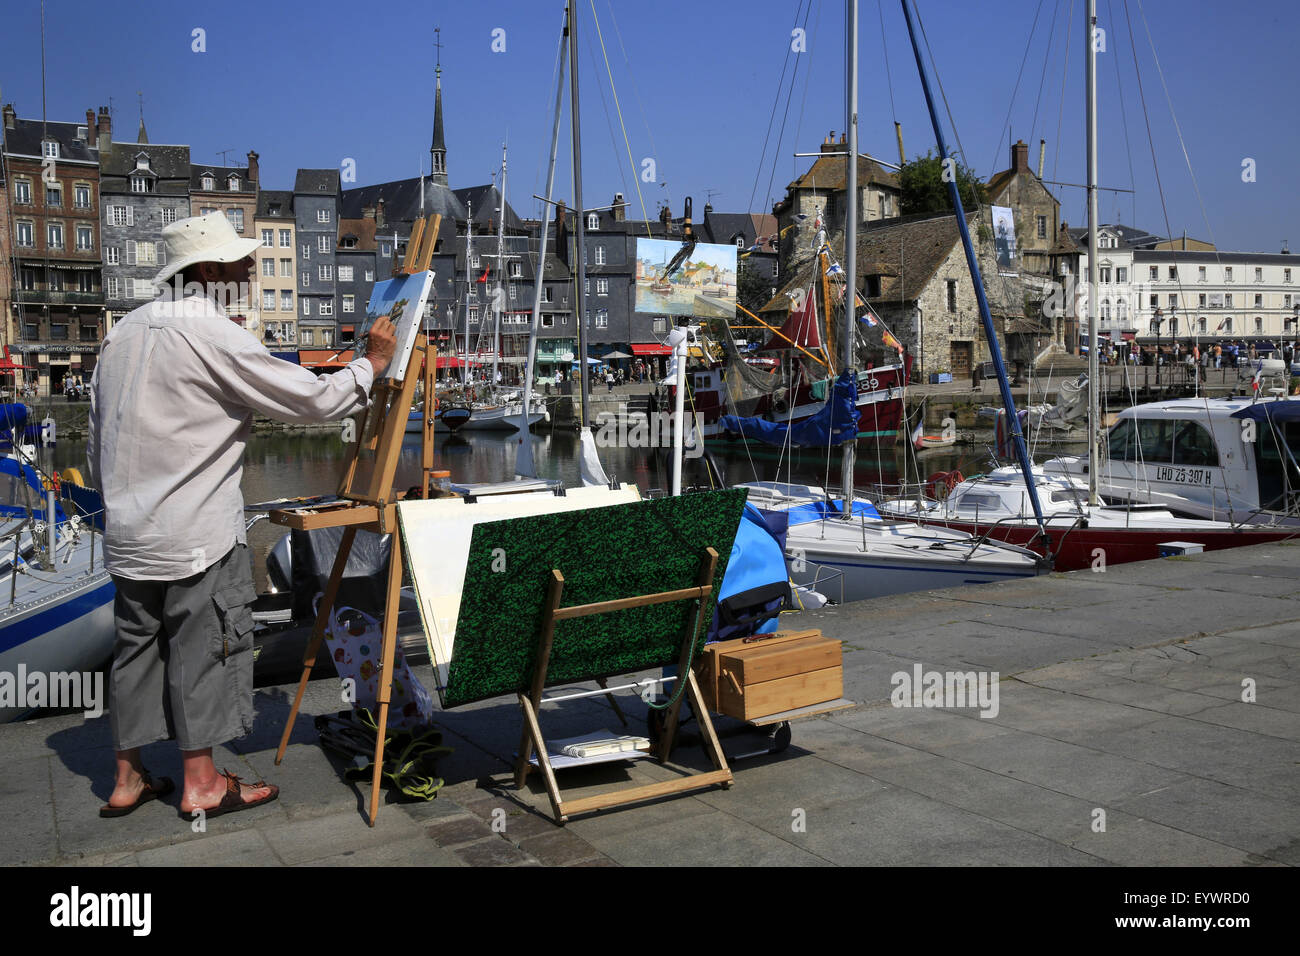 Painter on the quayside, Le Vieux Bassin, Honfleur, Basse Normandie, France, Europe - Stock Image